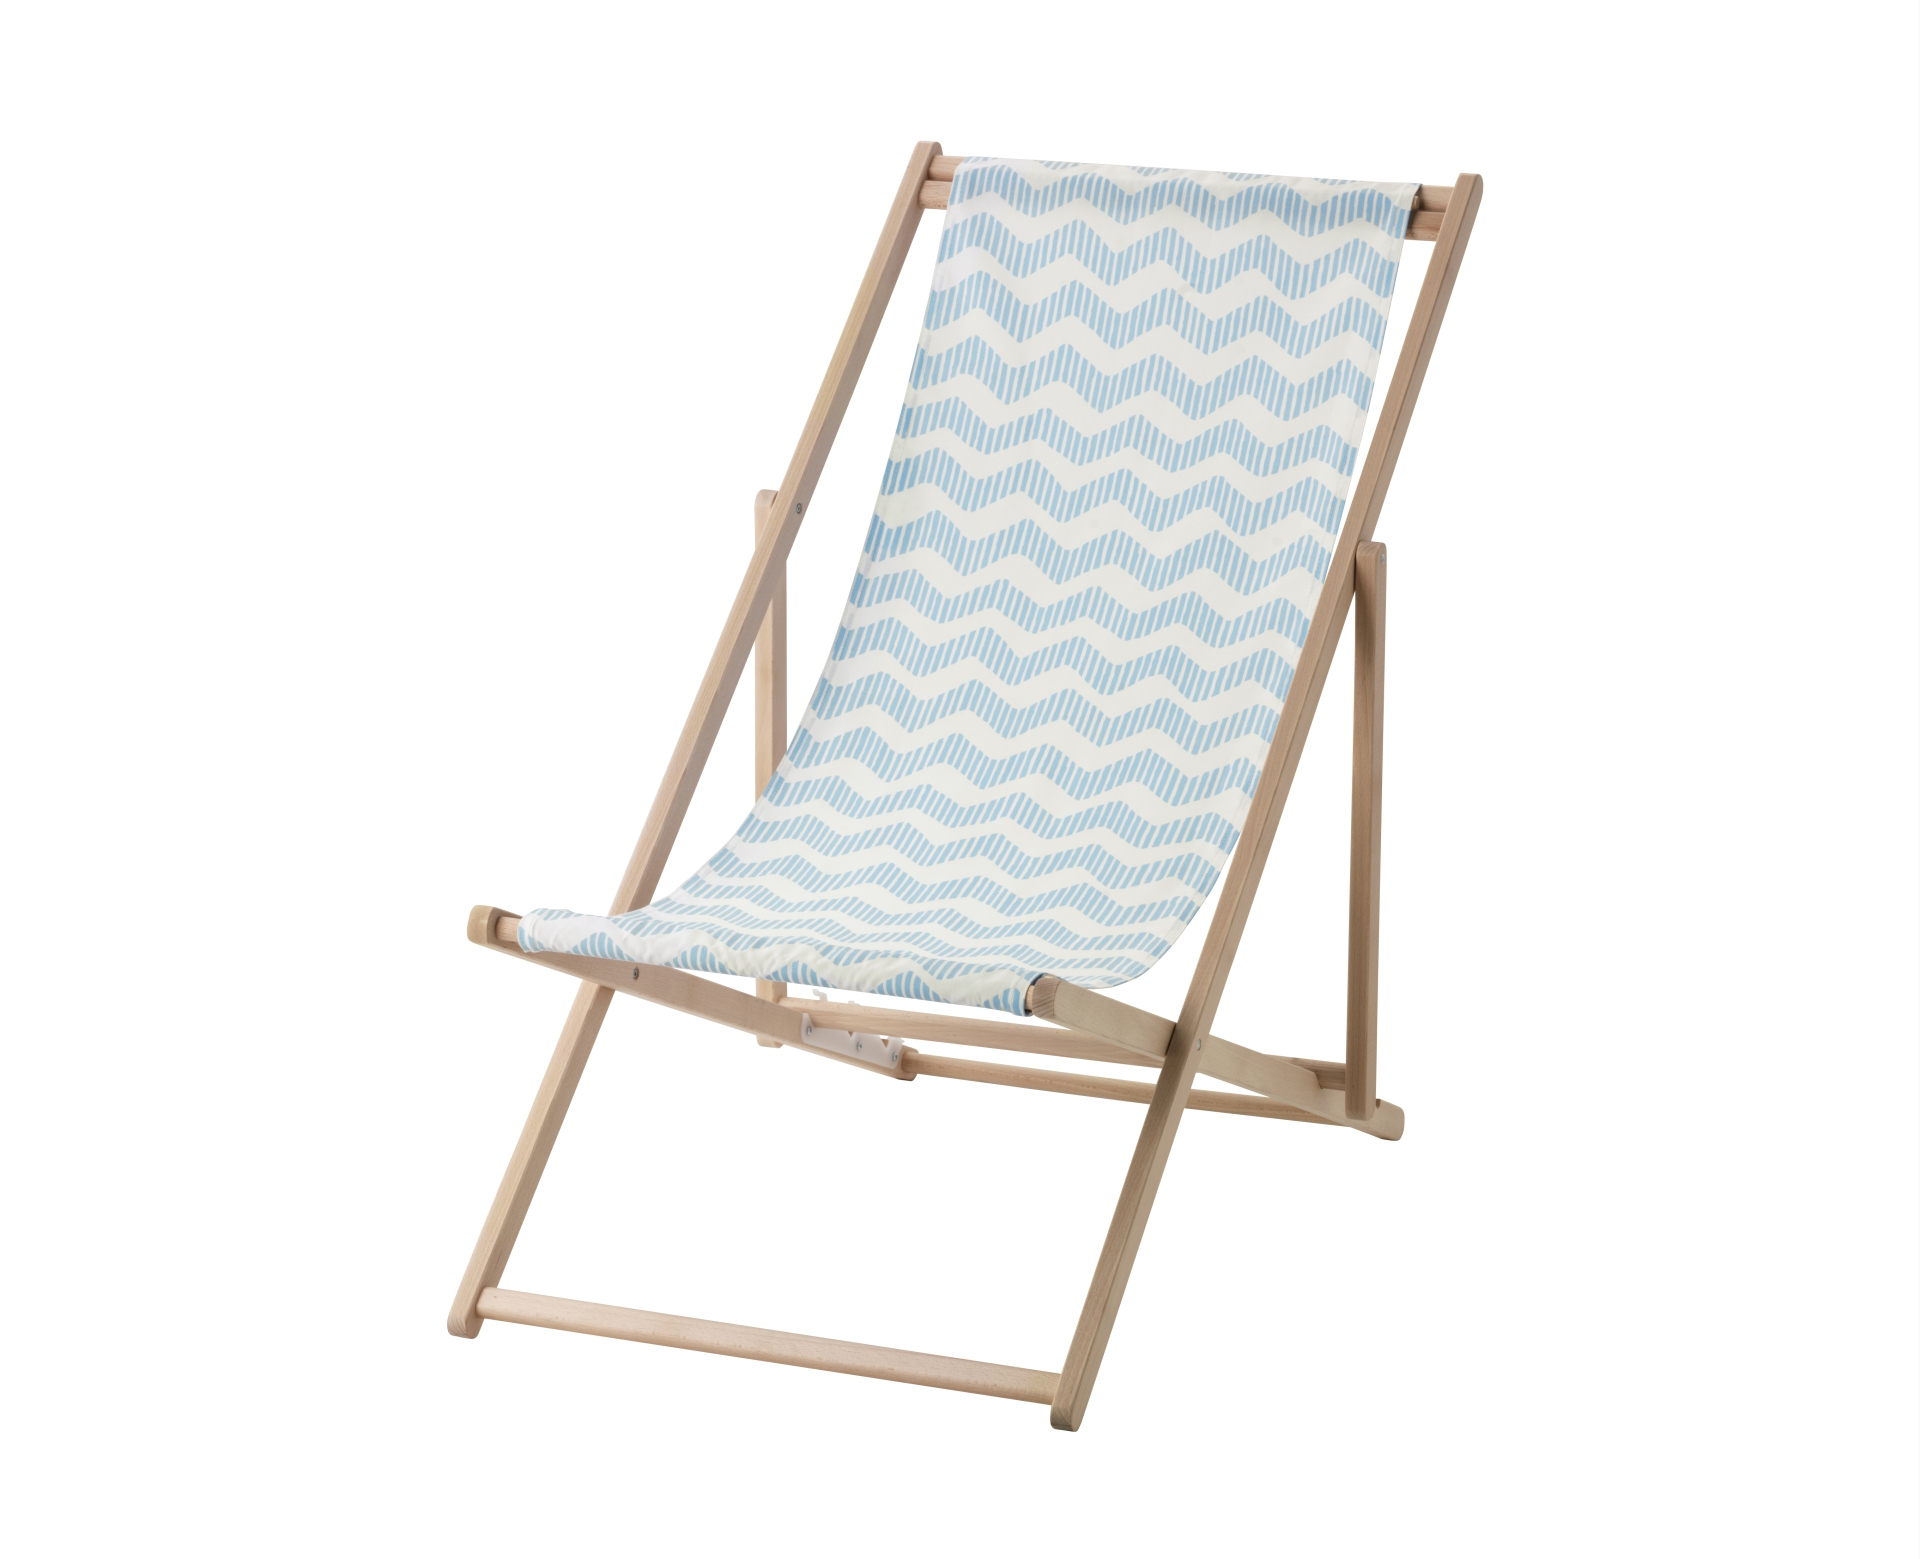 ikea beach chair card table and sets target recalls chairs due to fall fingertip